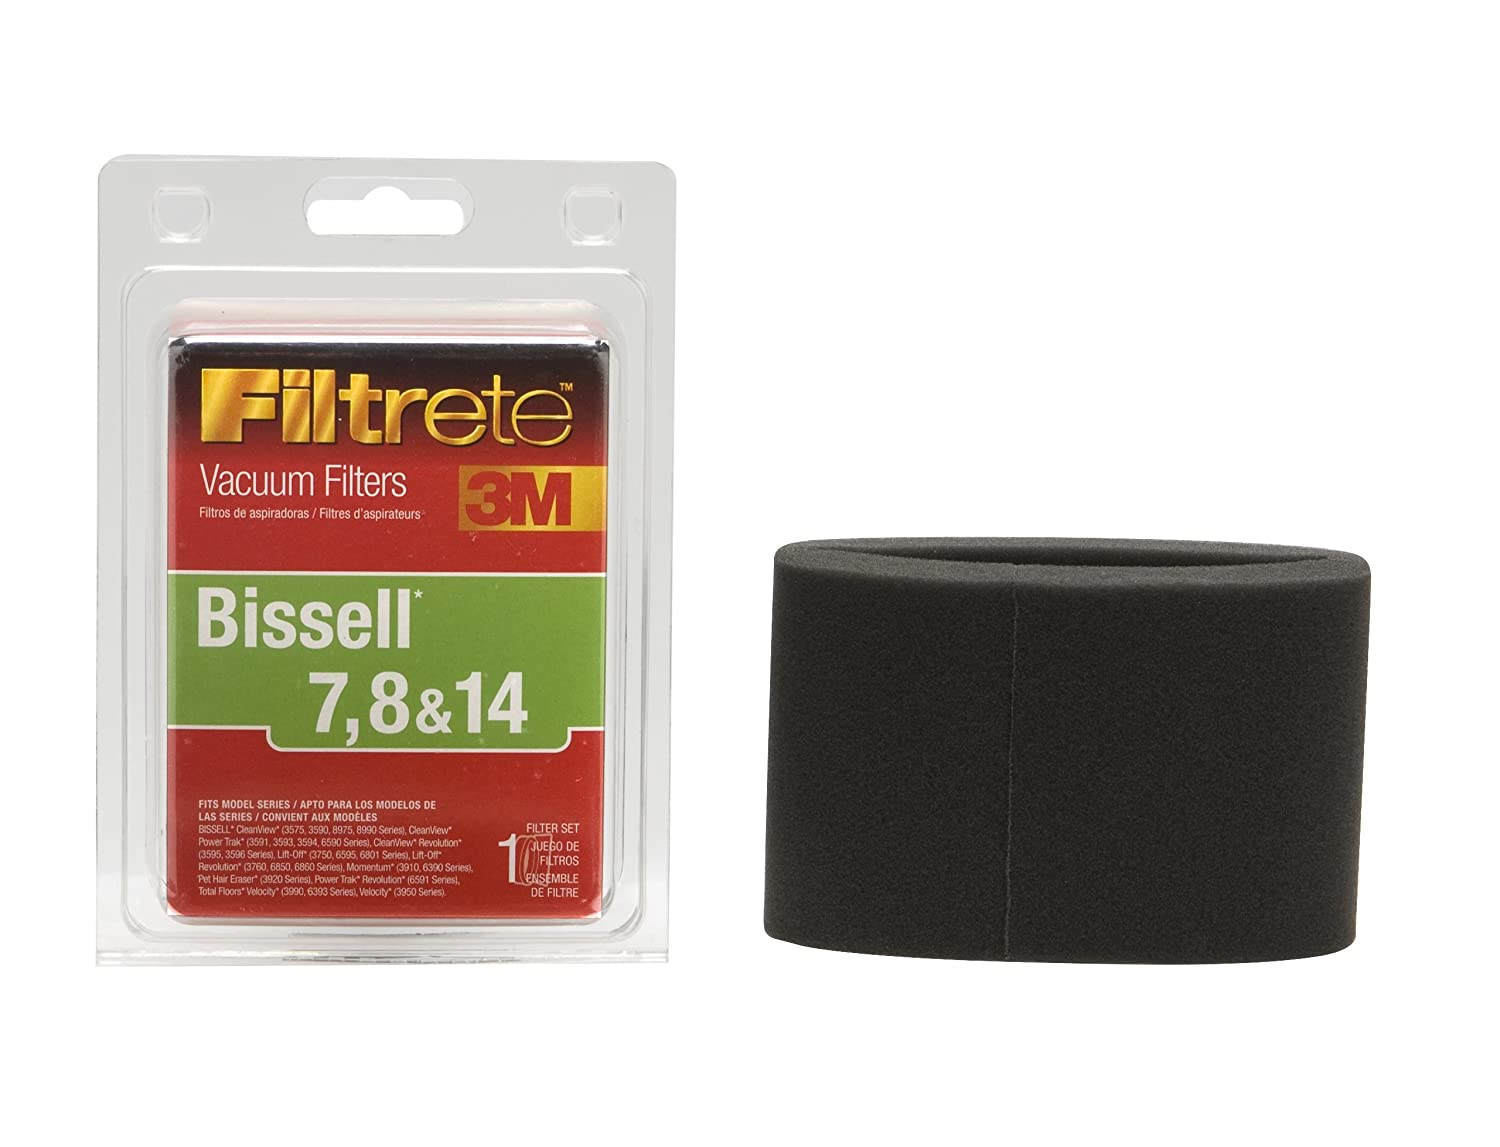 Amazon.com: 3M Filtrete Bissell 7, 8 & 14 Allergen Vacuum Filter: Home & Kitchen